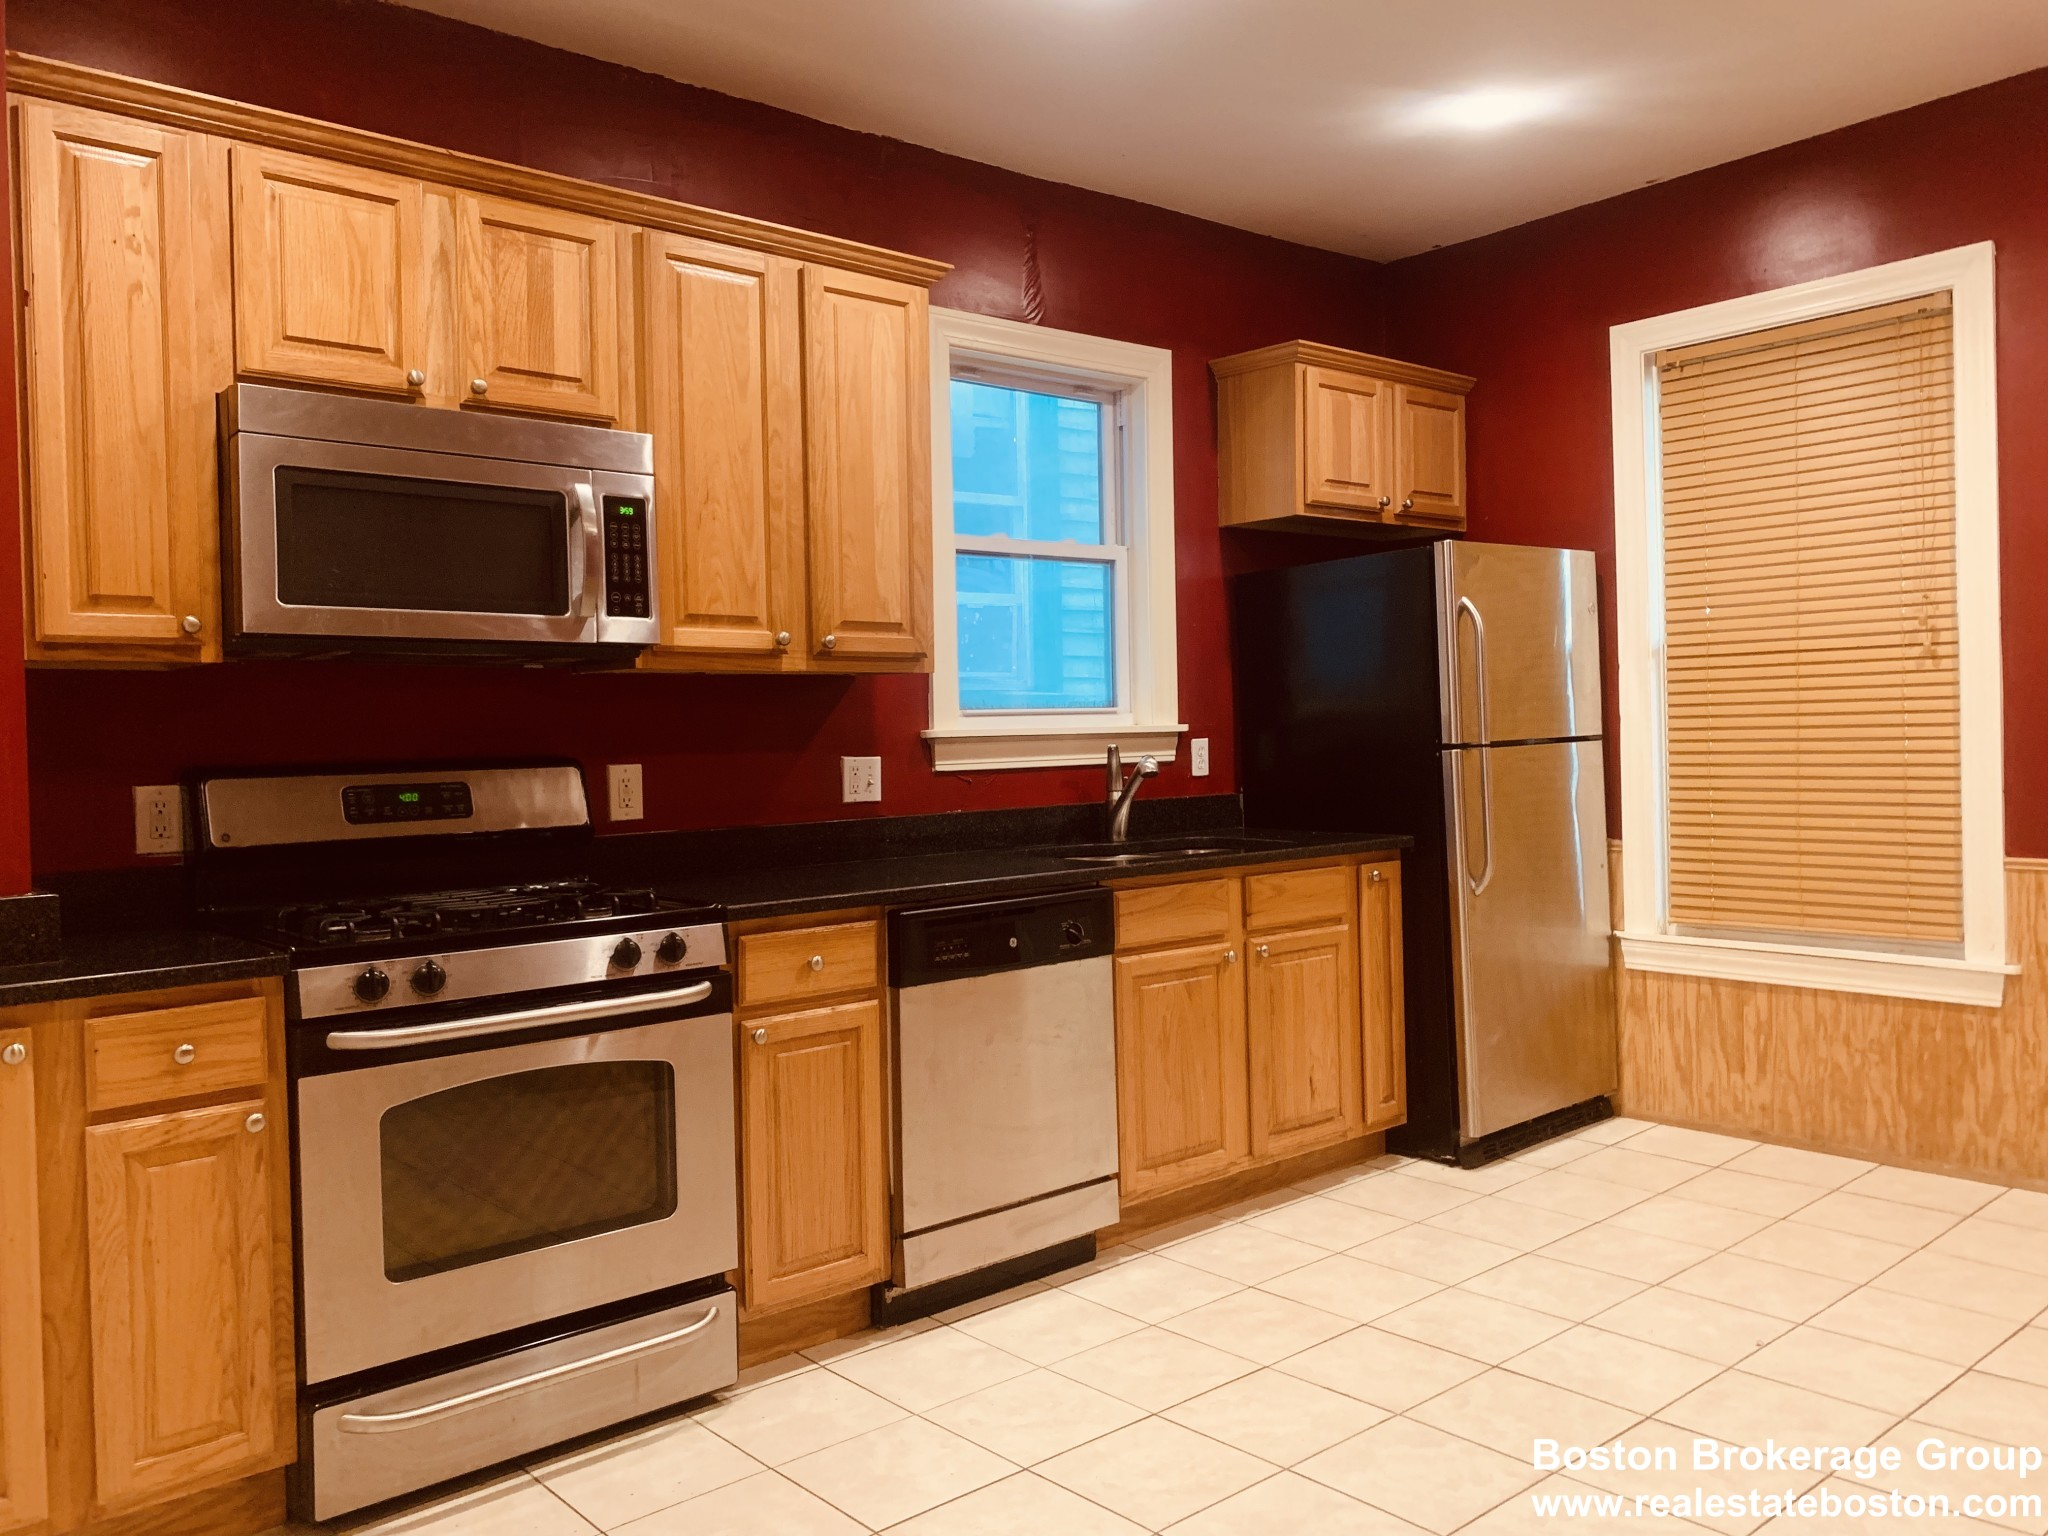 2.8 Beds, 1 Bath apartment in Boston, Mission Hill for $3,200